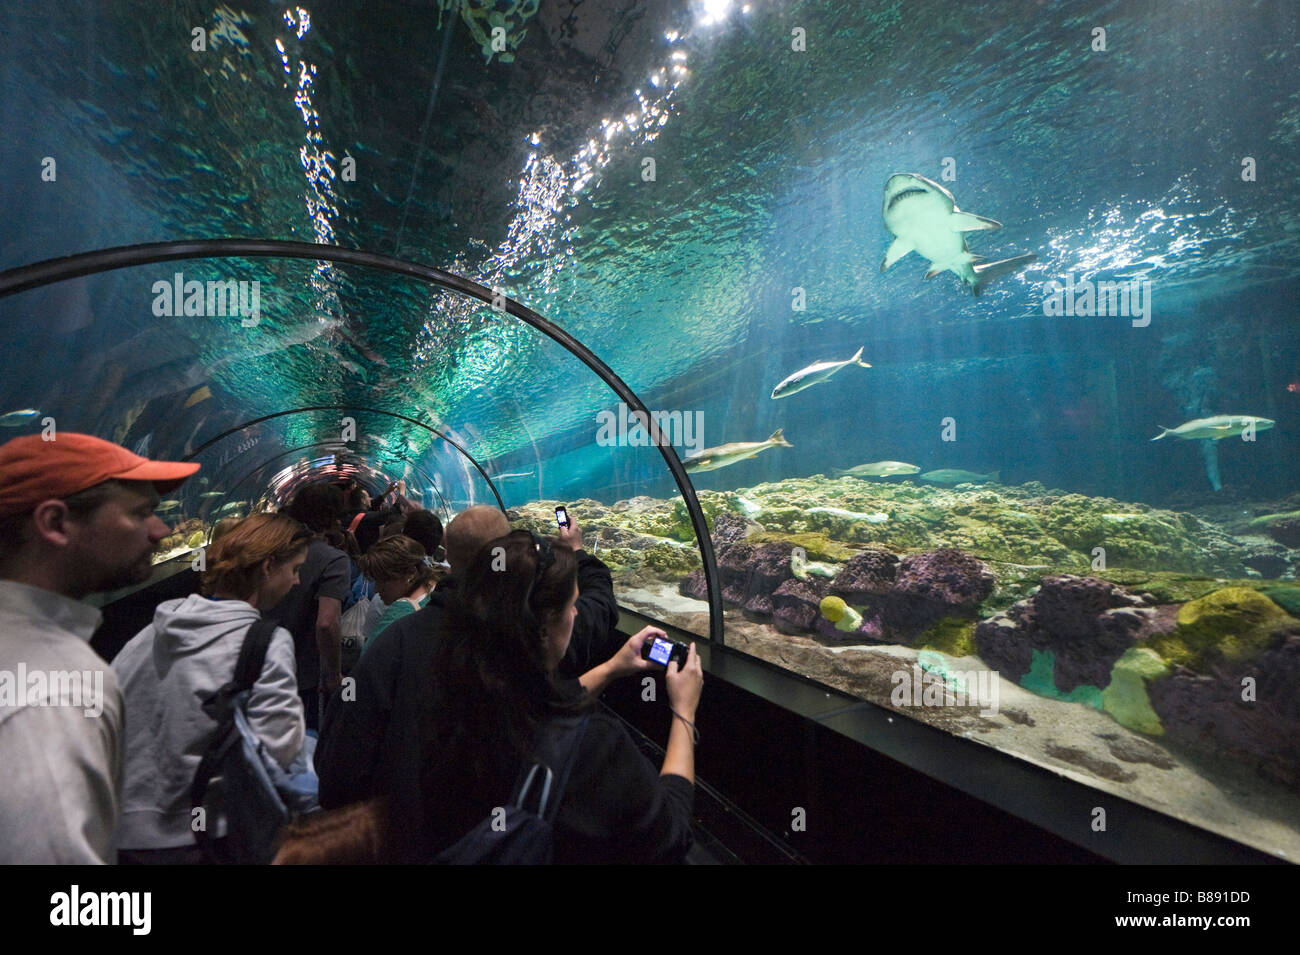 Freshwater aquarium fish orlando - Underwater Viewing Tunnel At The Shark Encounter Sea World Orlando Central Florida